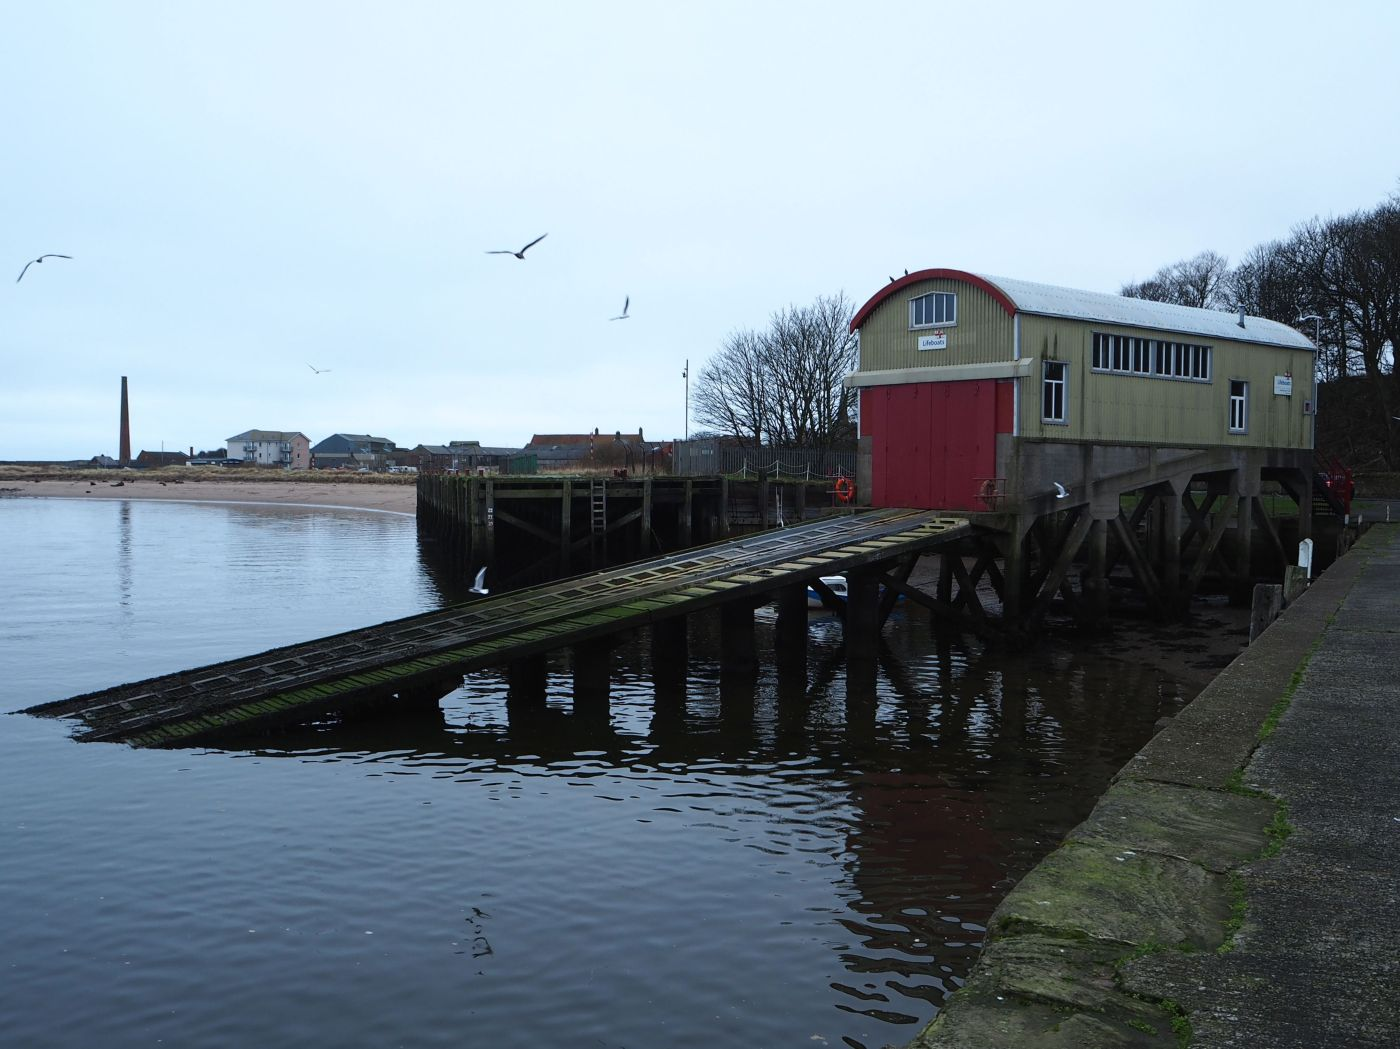 Berwick upon Tweed lifeboat station